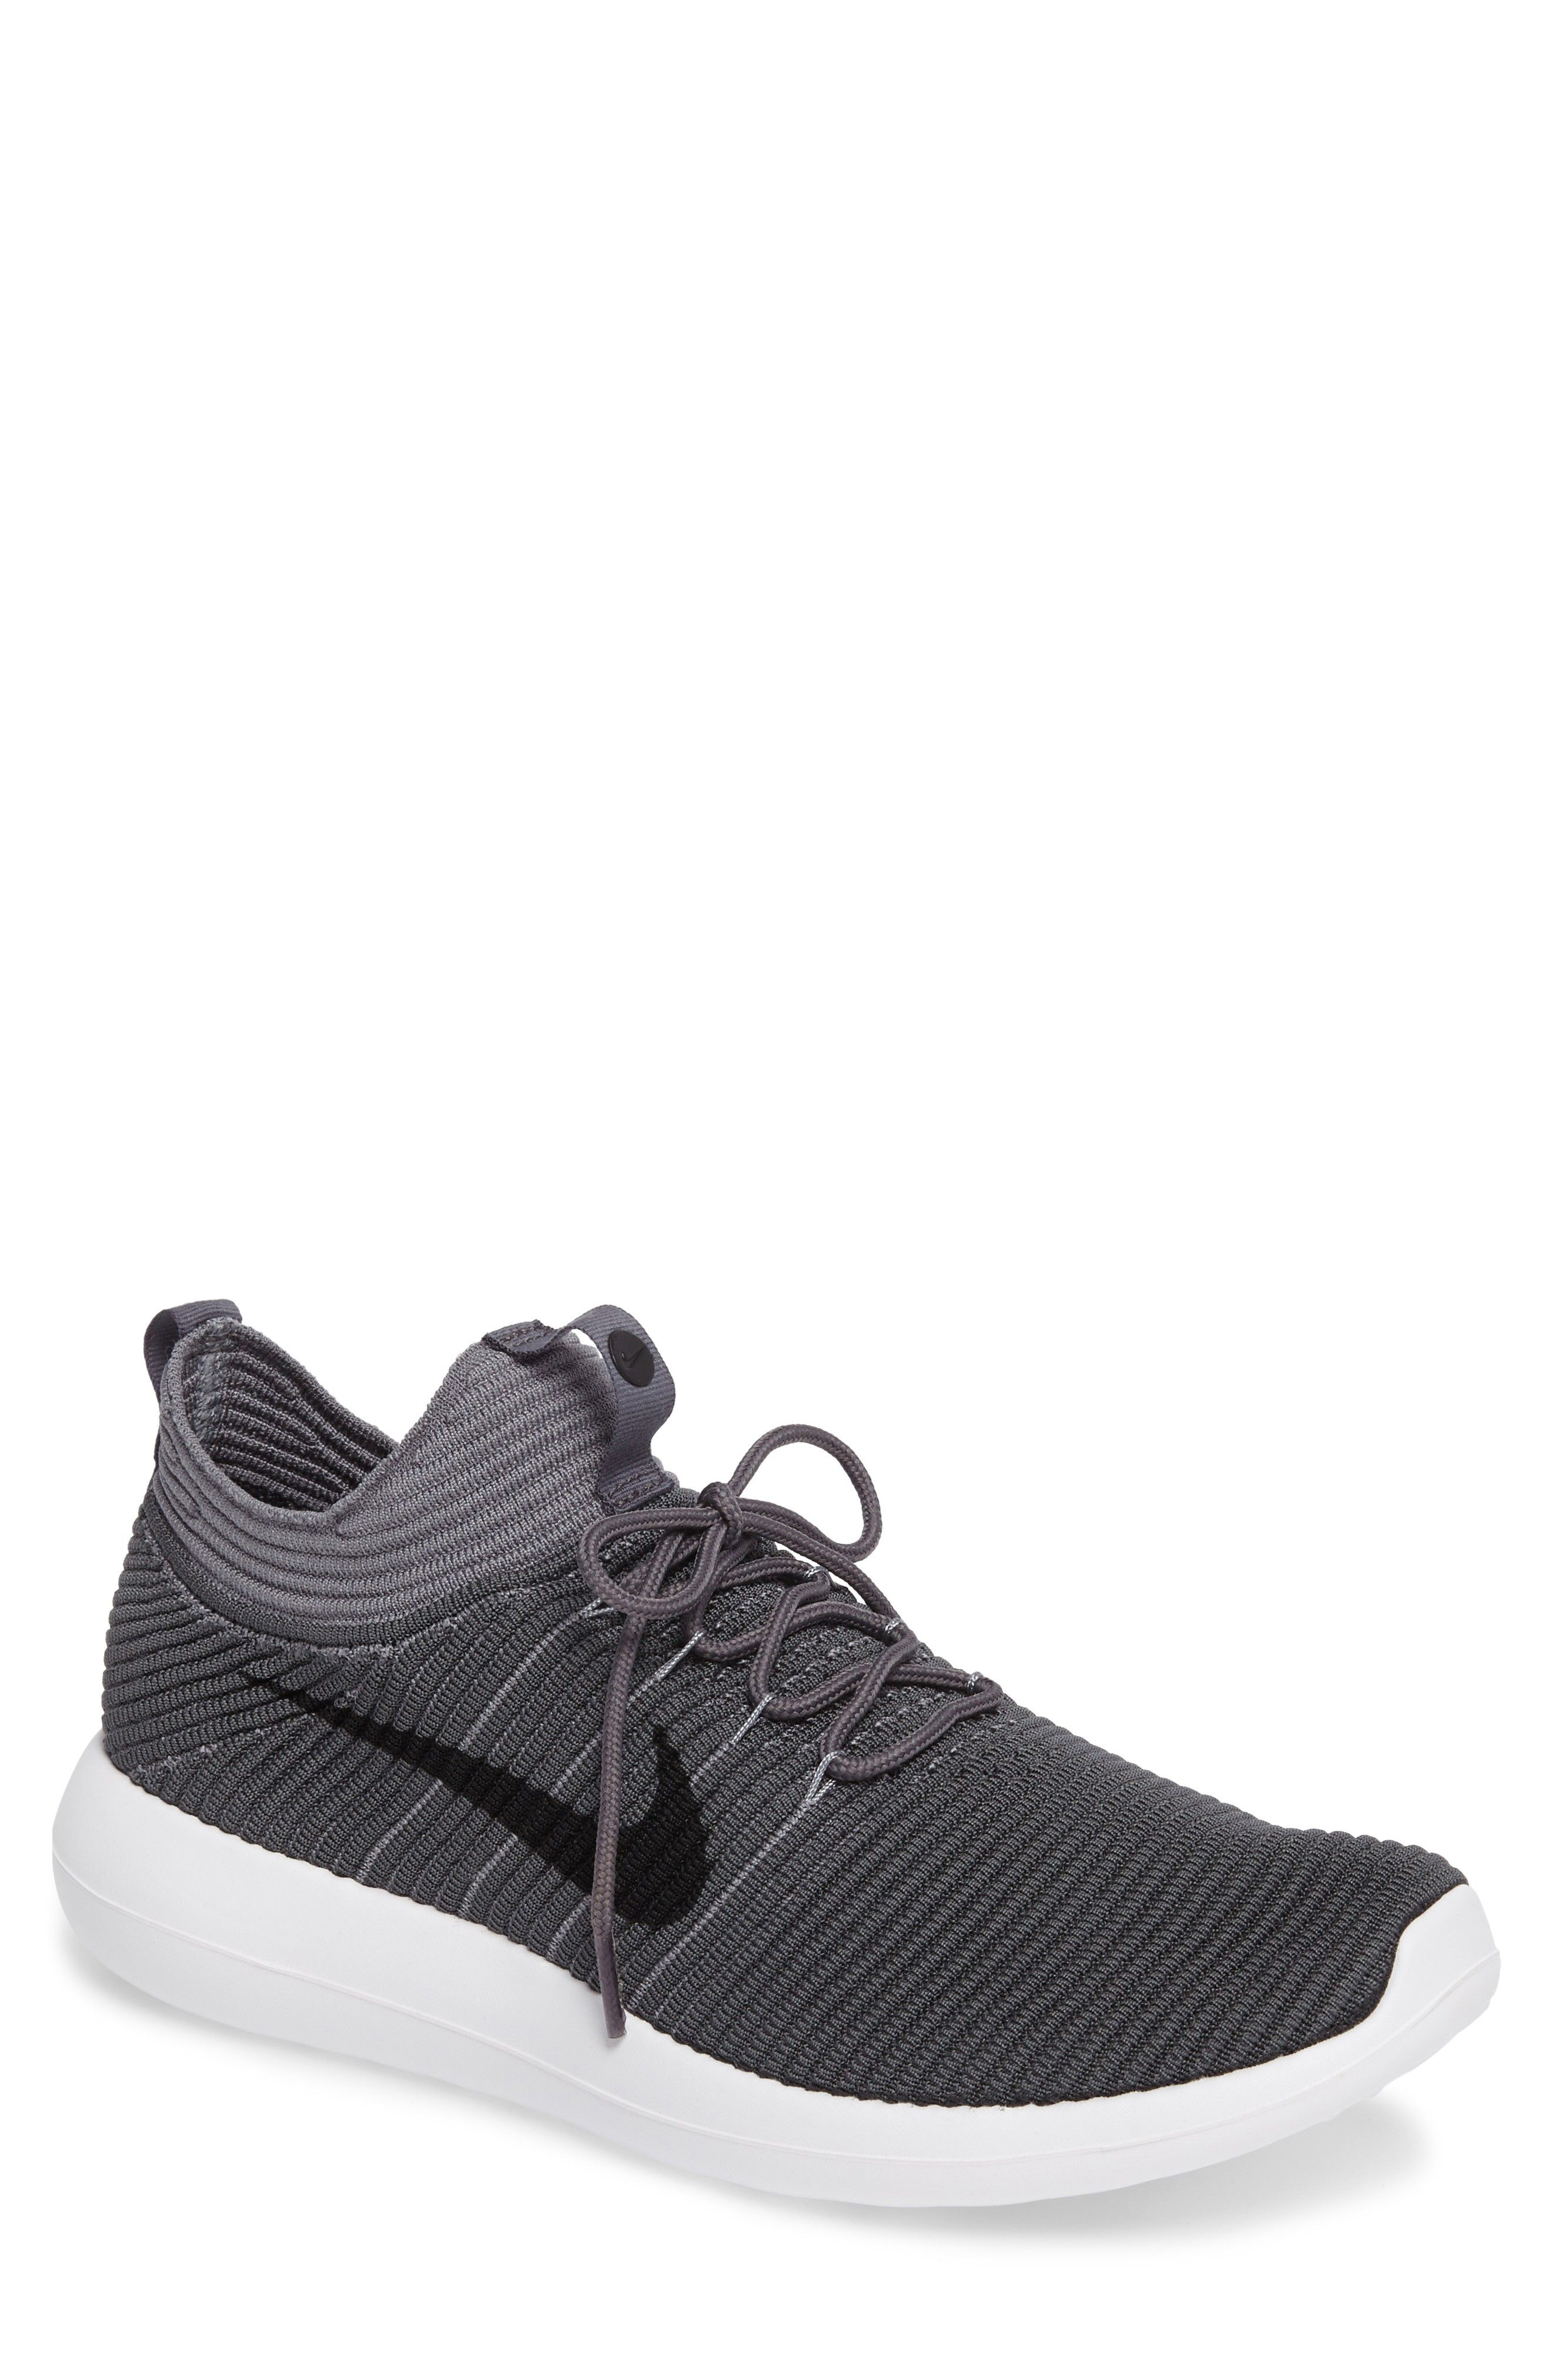 new concept 6a74a 269df Roshe Two Flyknit V2 Sneaker | Nordstrom Fall Sale Men's ...